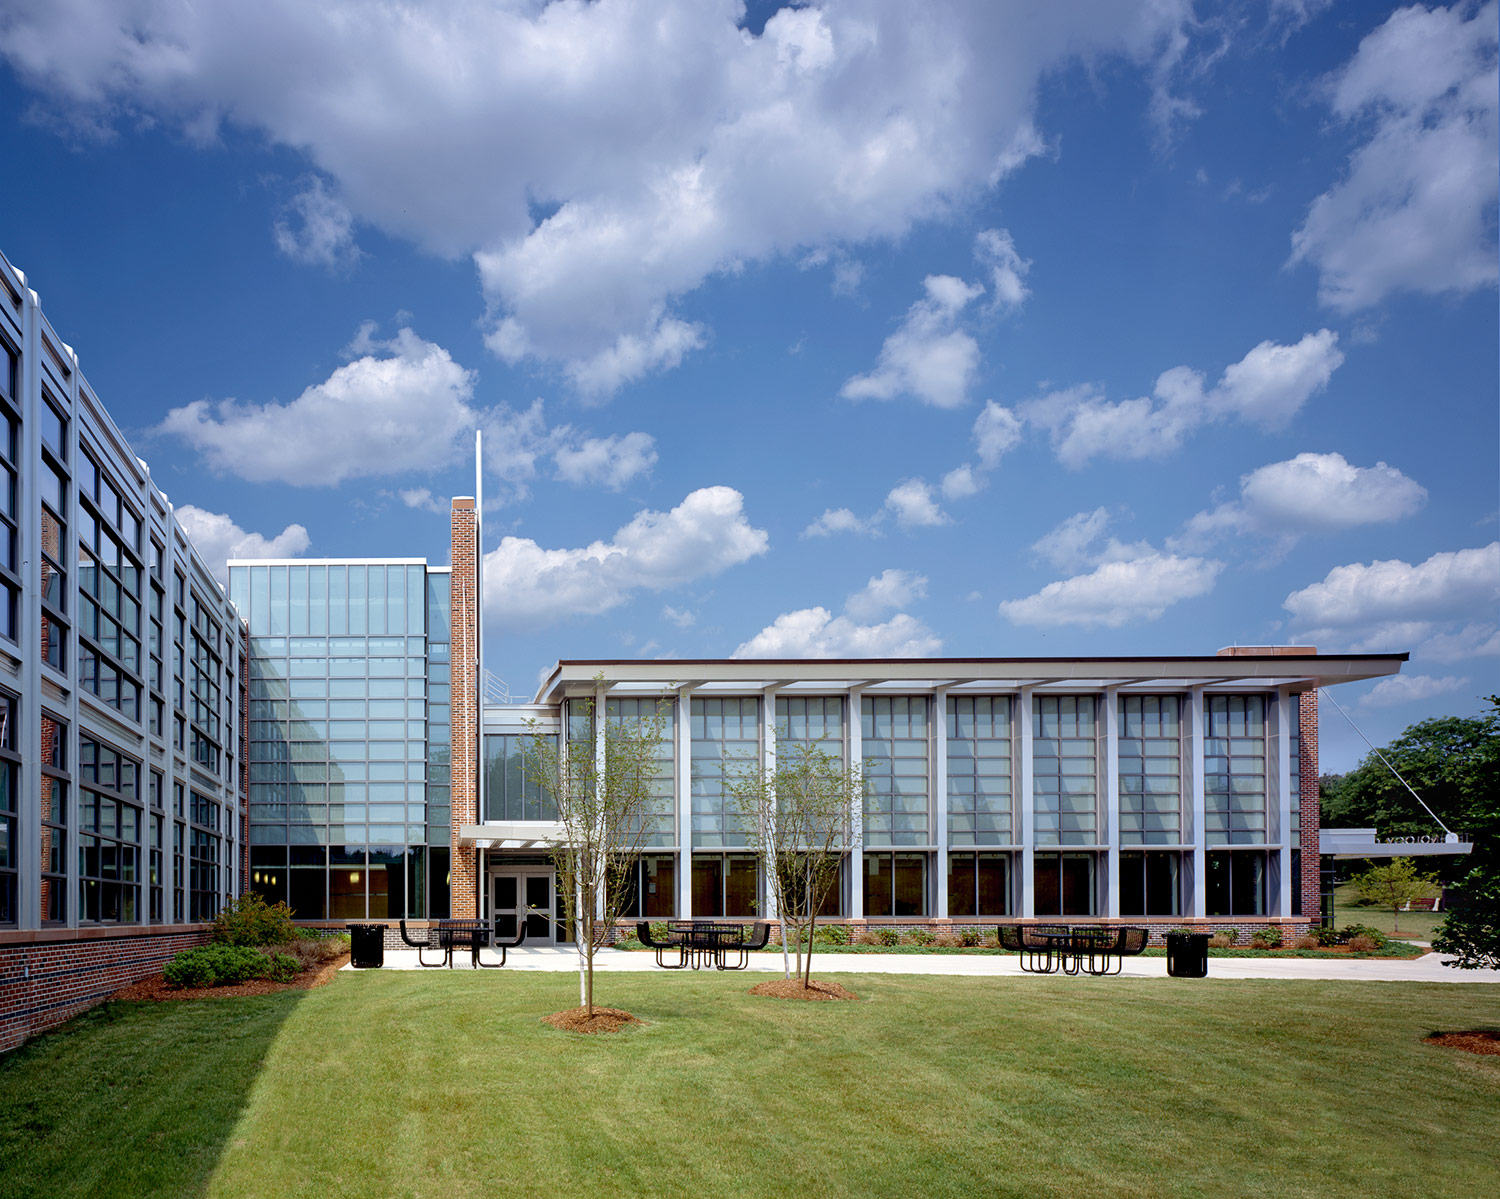 NECC, Fine Arts & Technology Center